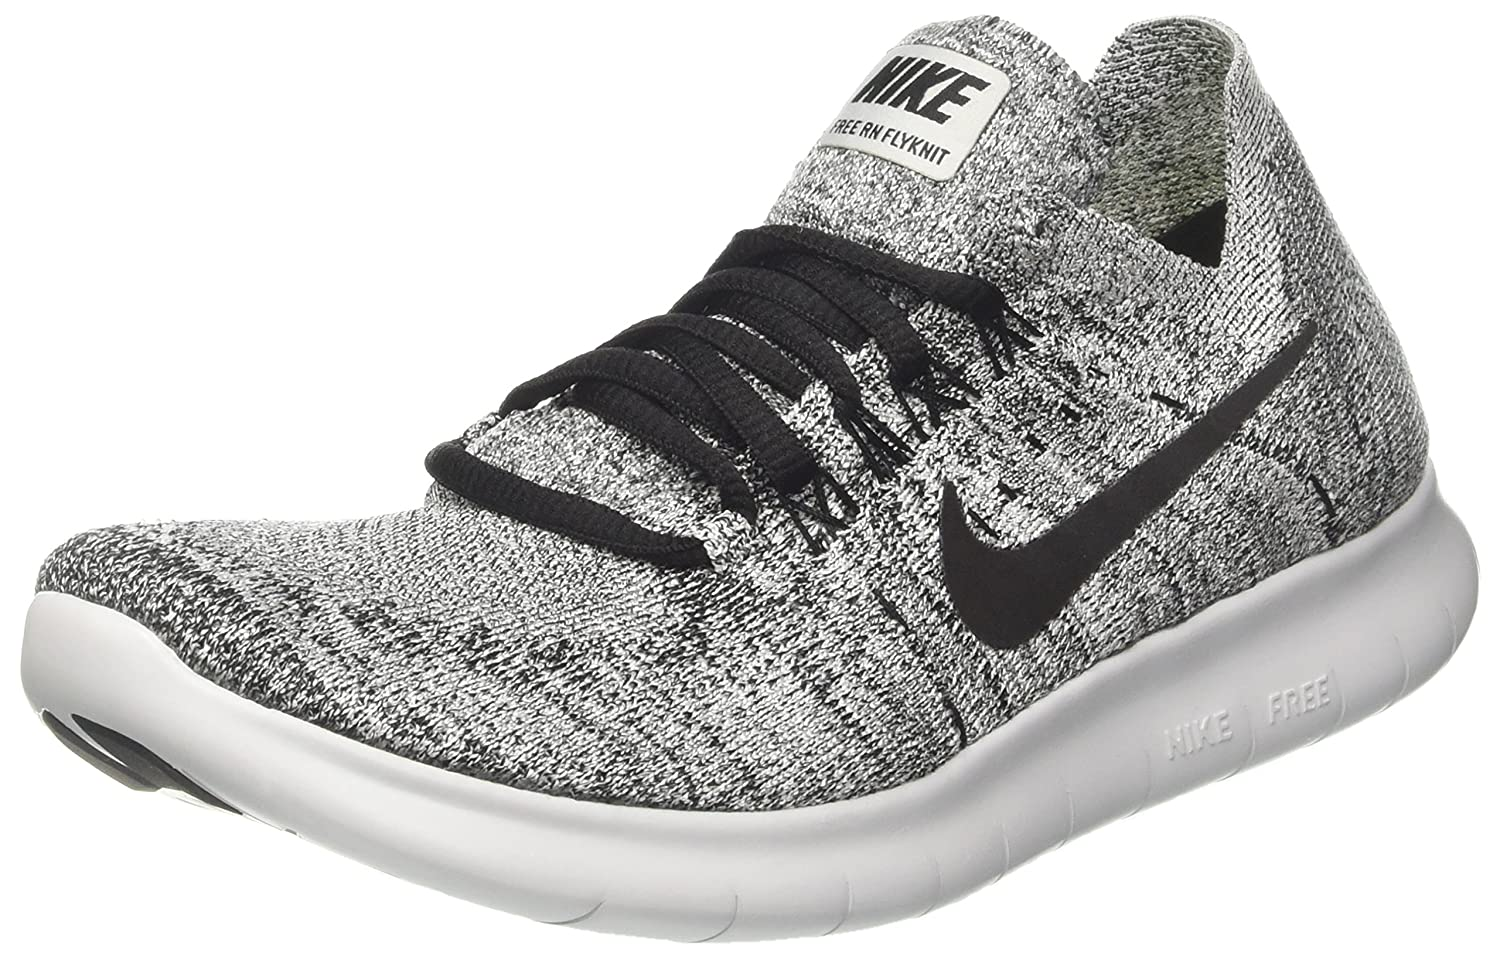 Wonderful Nike Wmns Free Rn Flyknit 2017 Running Shoes